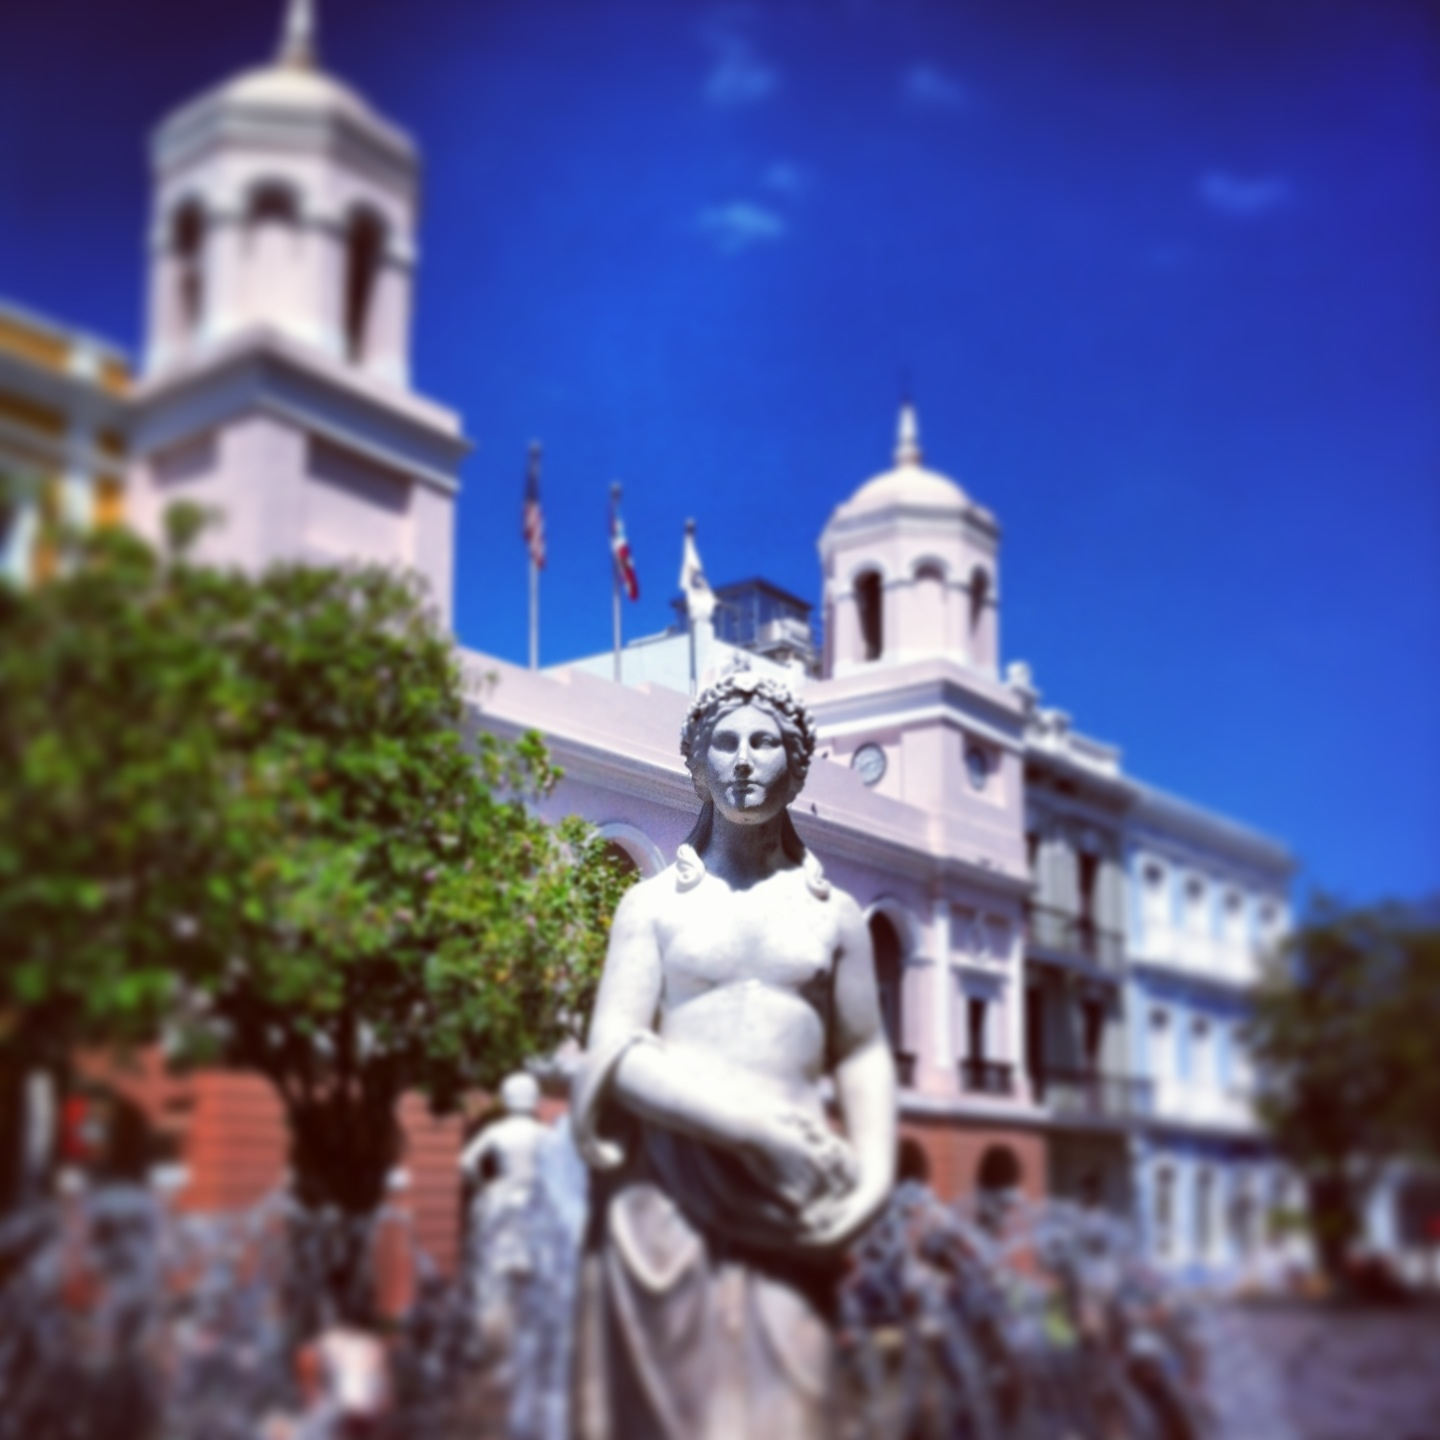 Picture of the Plaza de Armas, Old San Juan